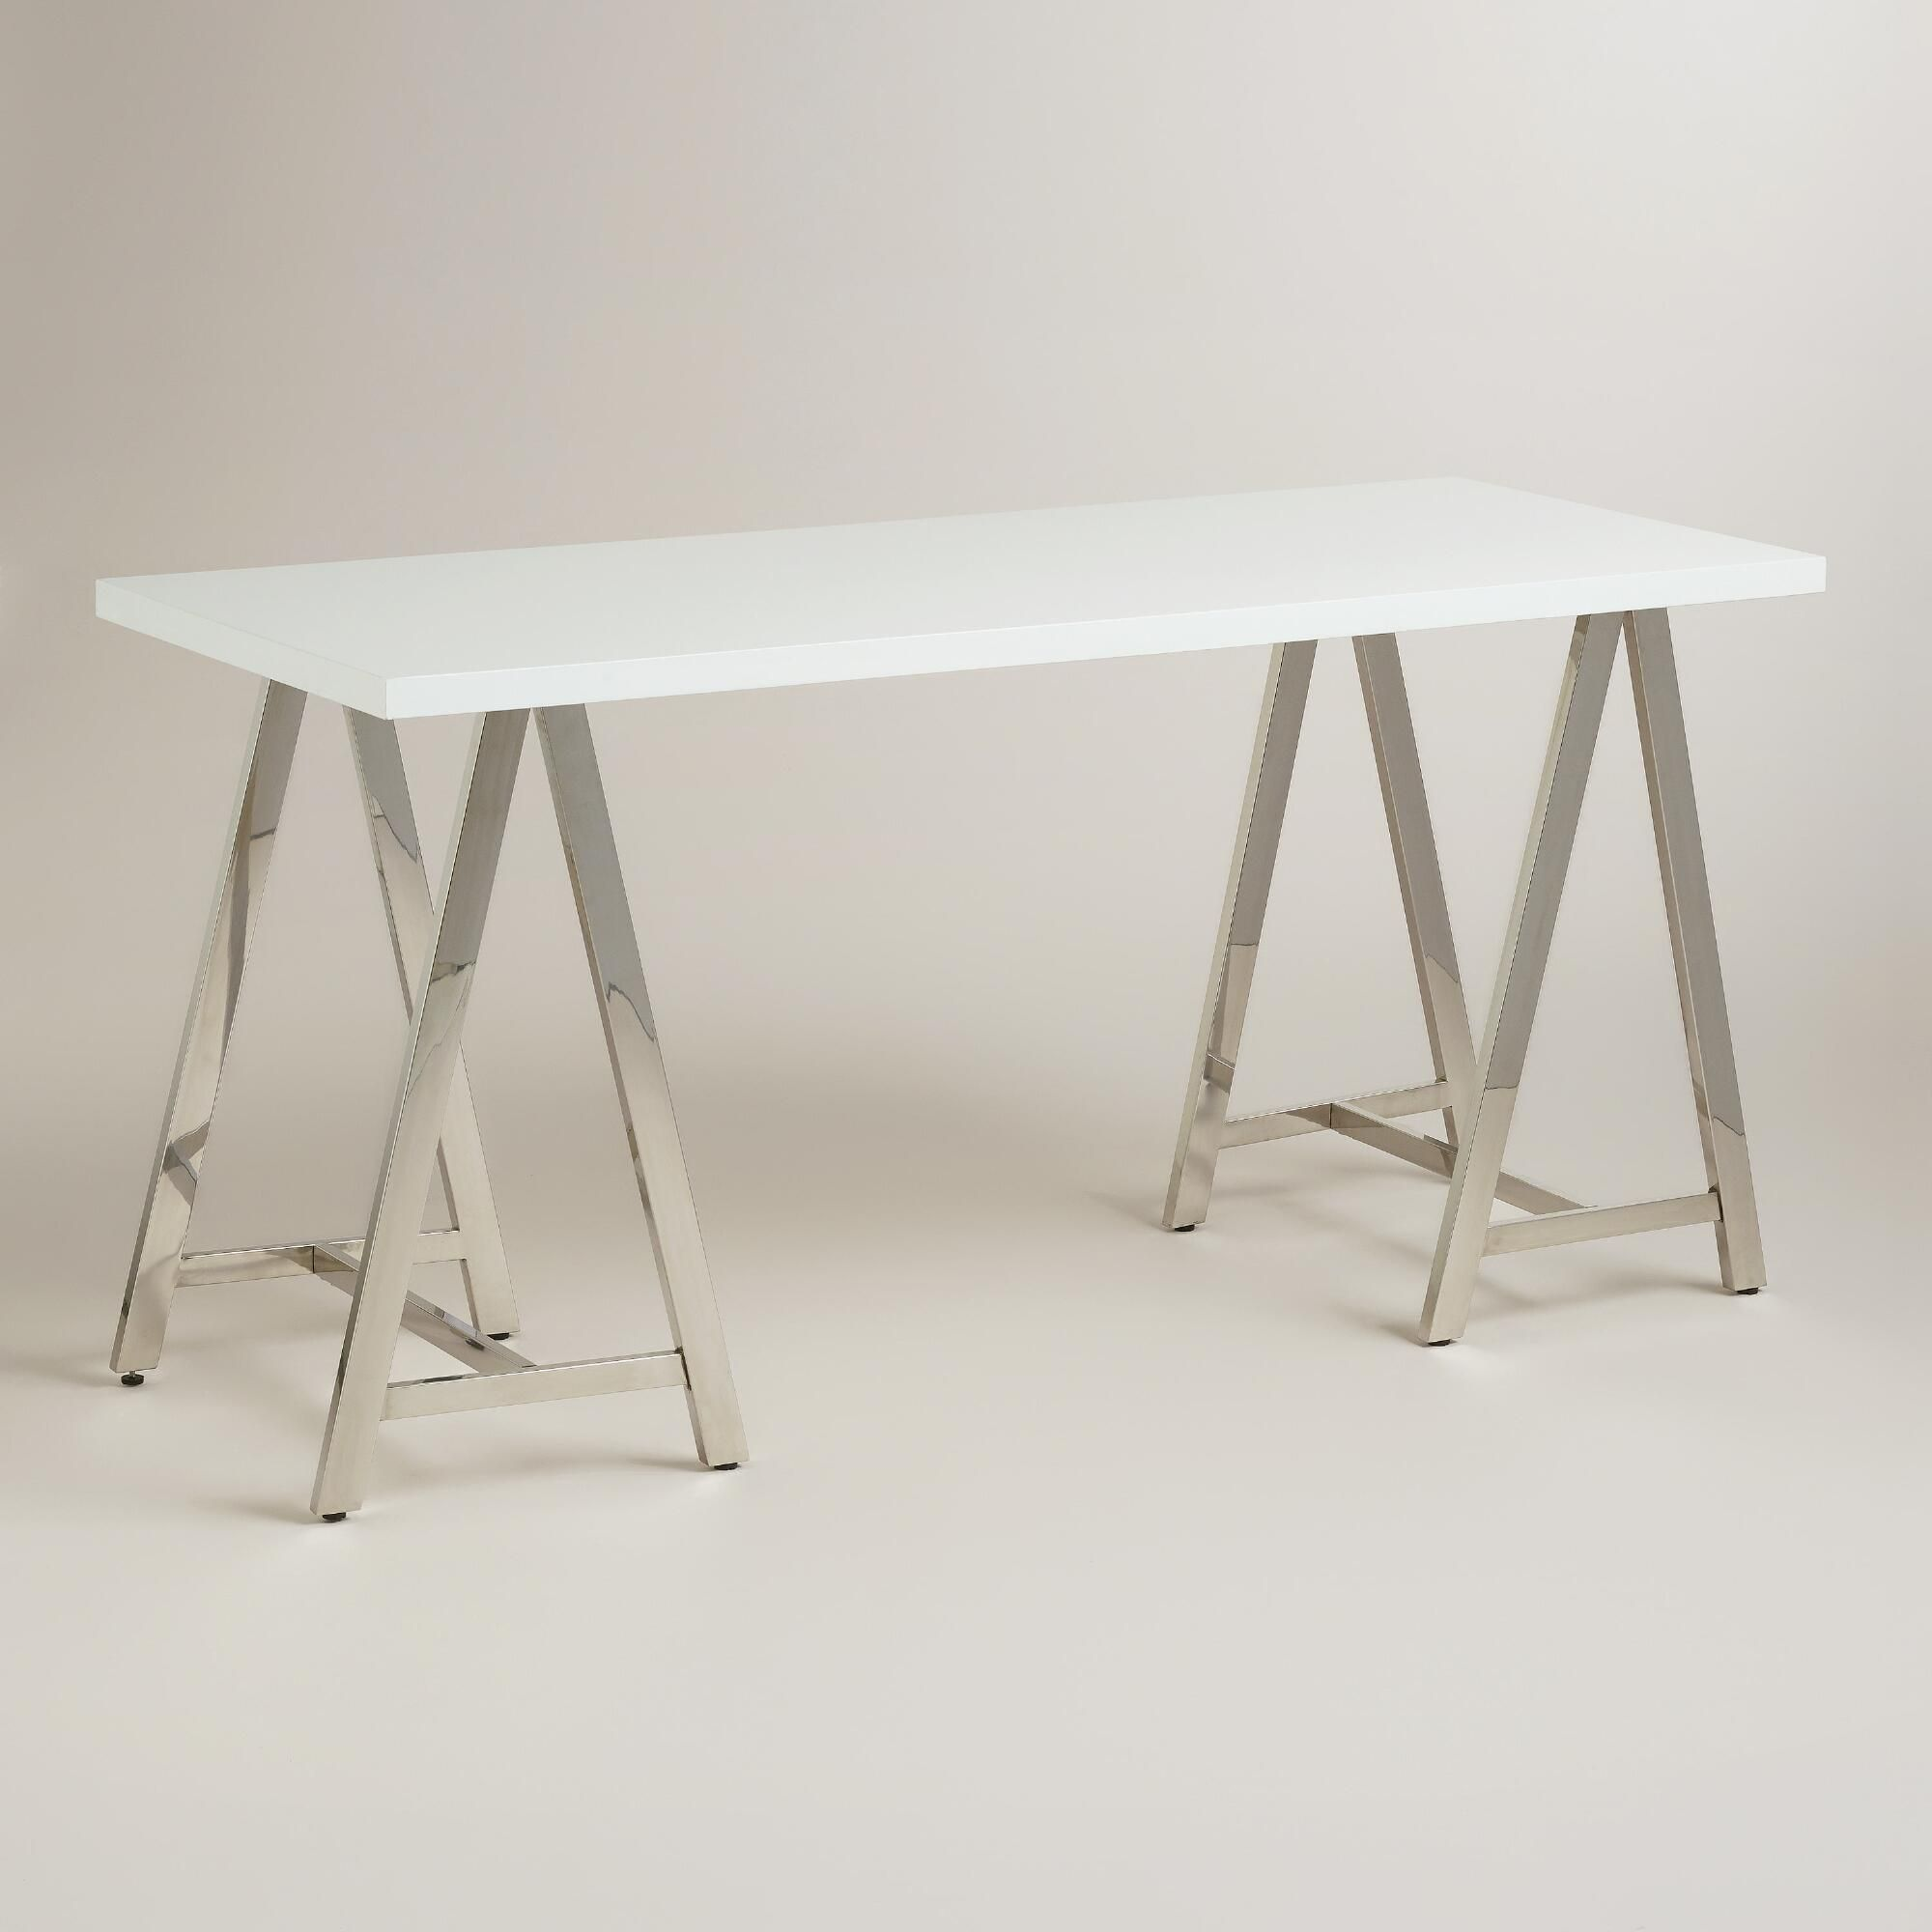 A Sleek High Gloss Lacquer Top And Chrome Sawhorse Base Combine